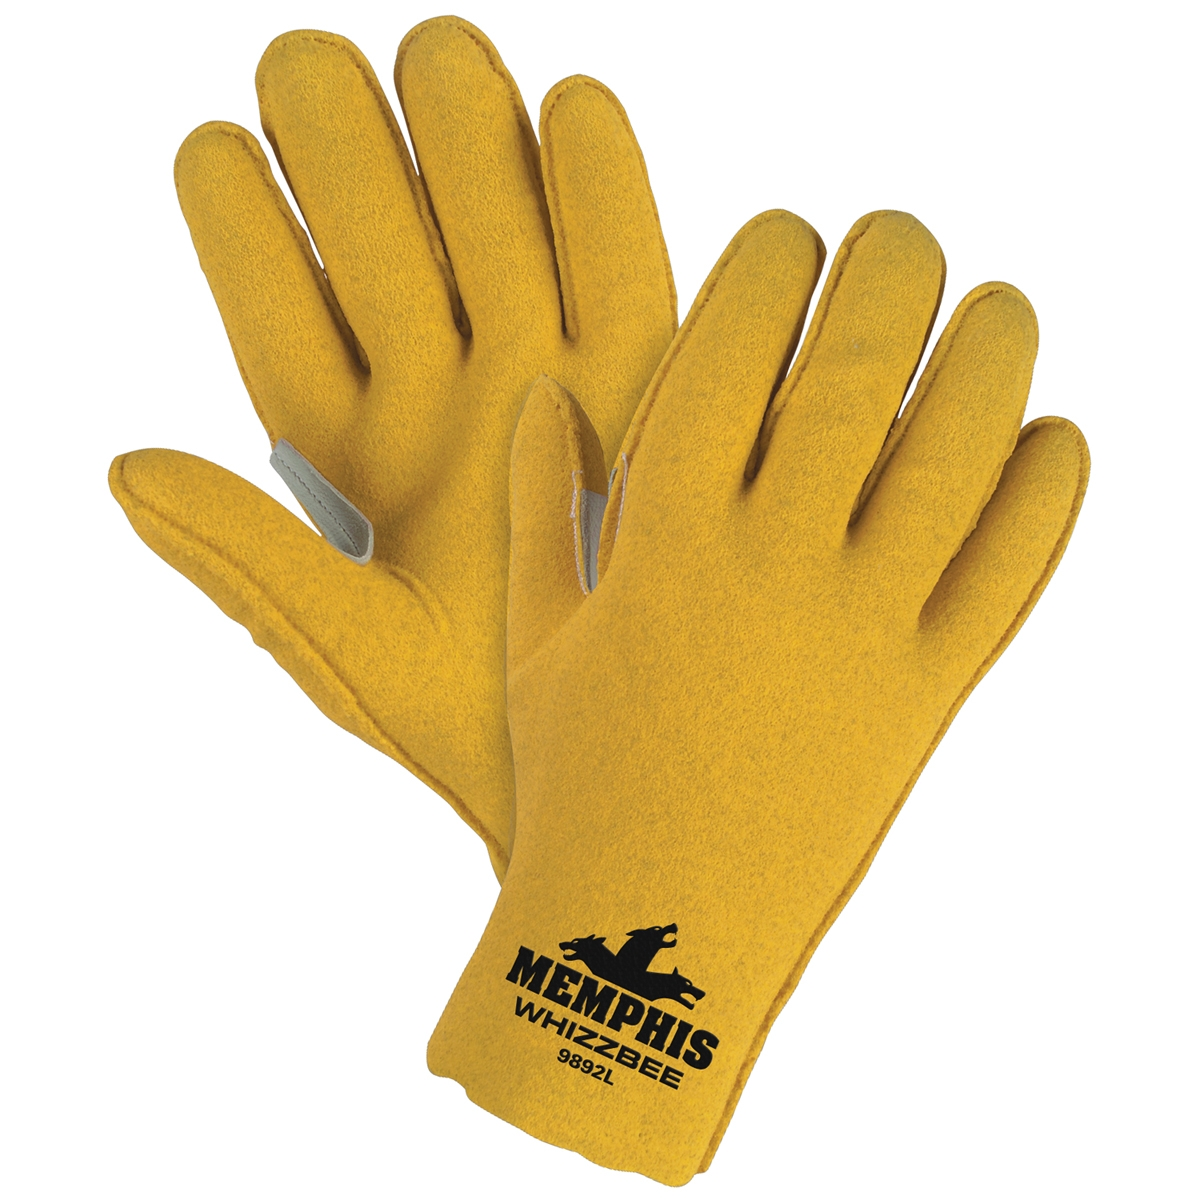 Memphis 9892 Whizzbee Textured Vinyl Dipped Gloves